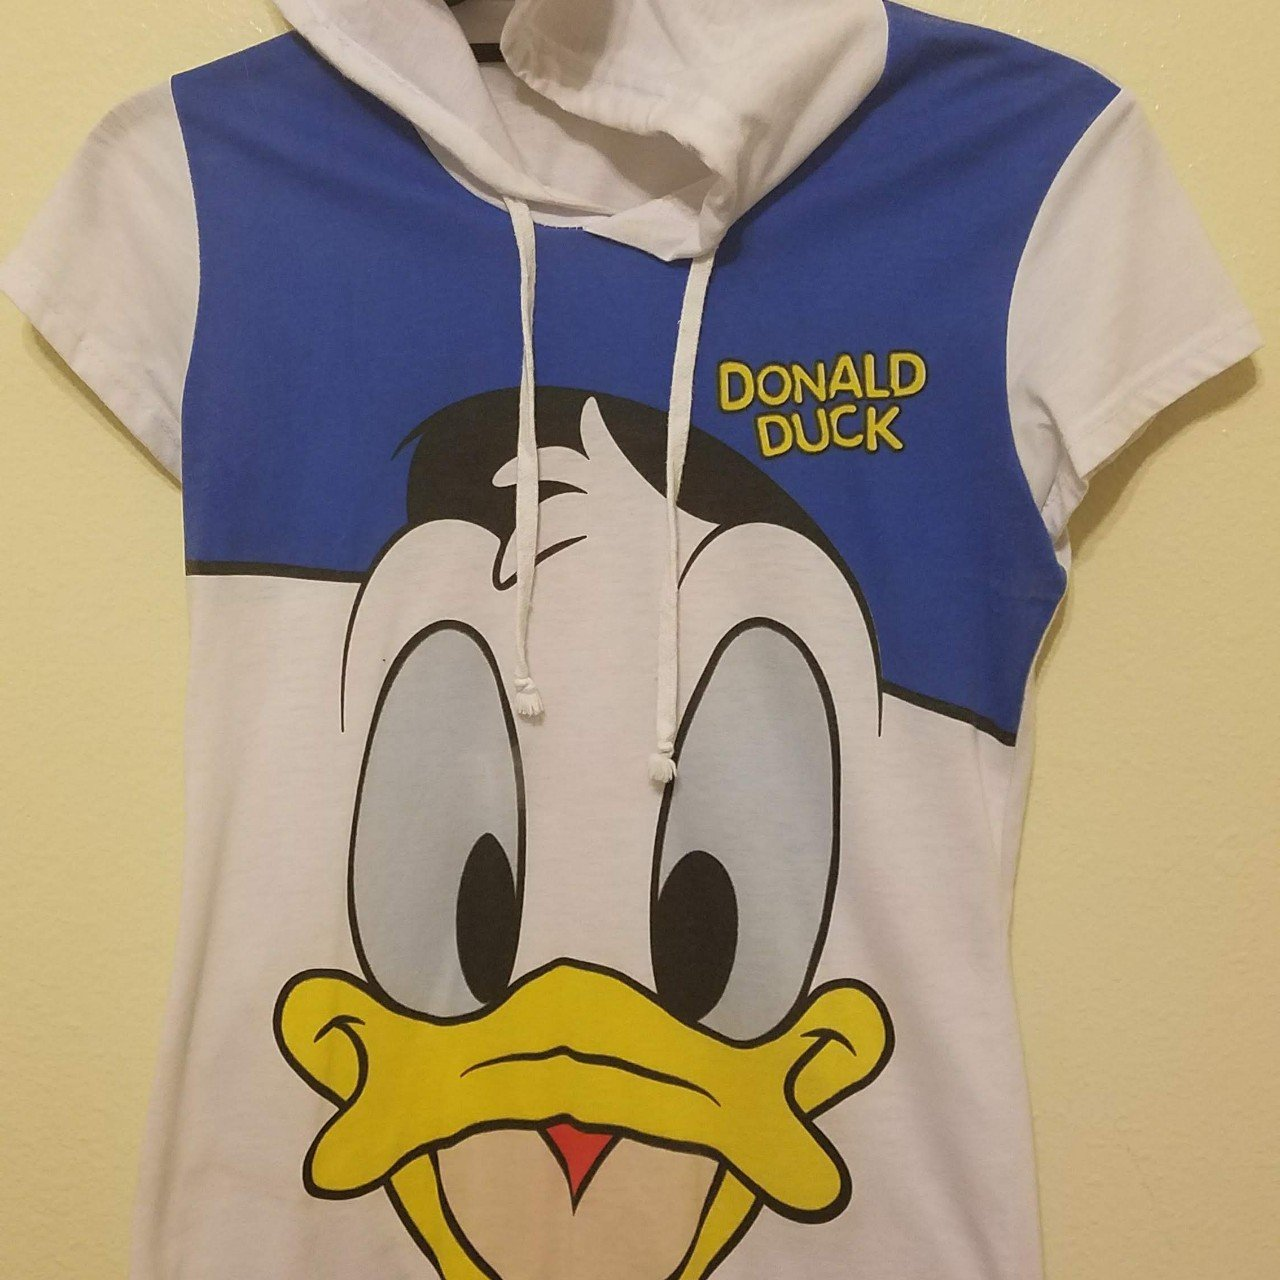 29071f58151c Hooded Donald Duck face shirt. Second picture shows slight - Depop